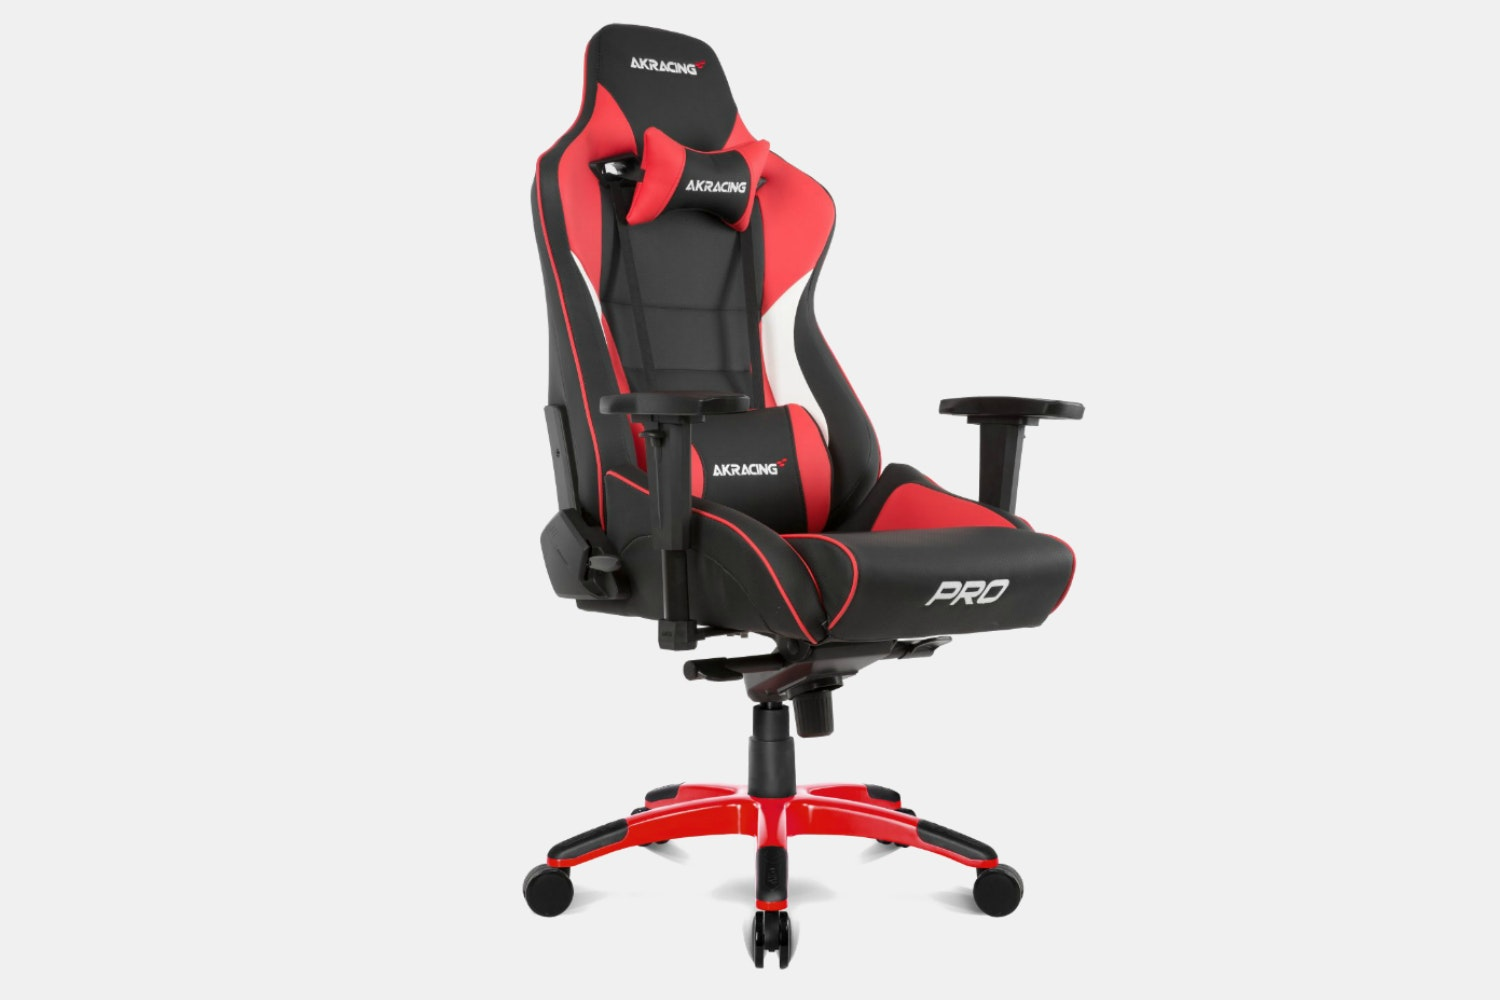 AKRacing Pro Gaming Chair (2018 Model)